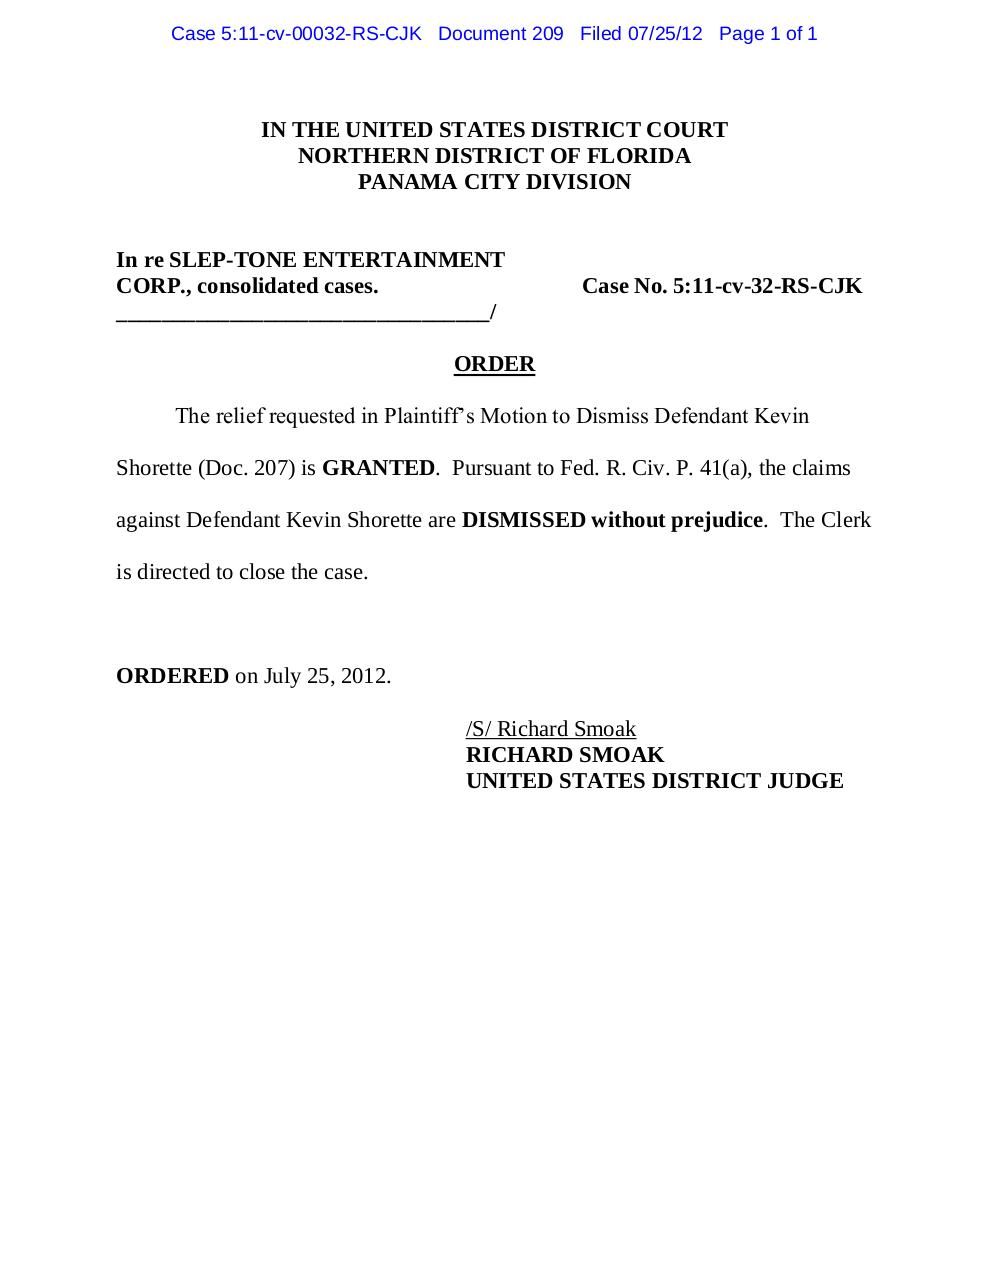 Pdf document panama 209 order granting doc 207 re for Motion to dismiss with prejudice template